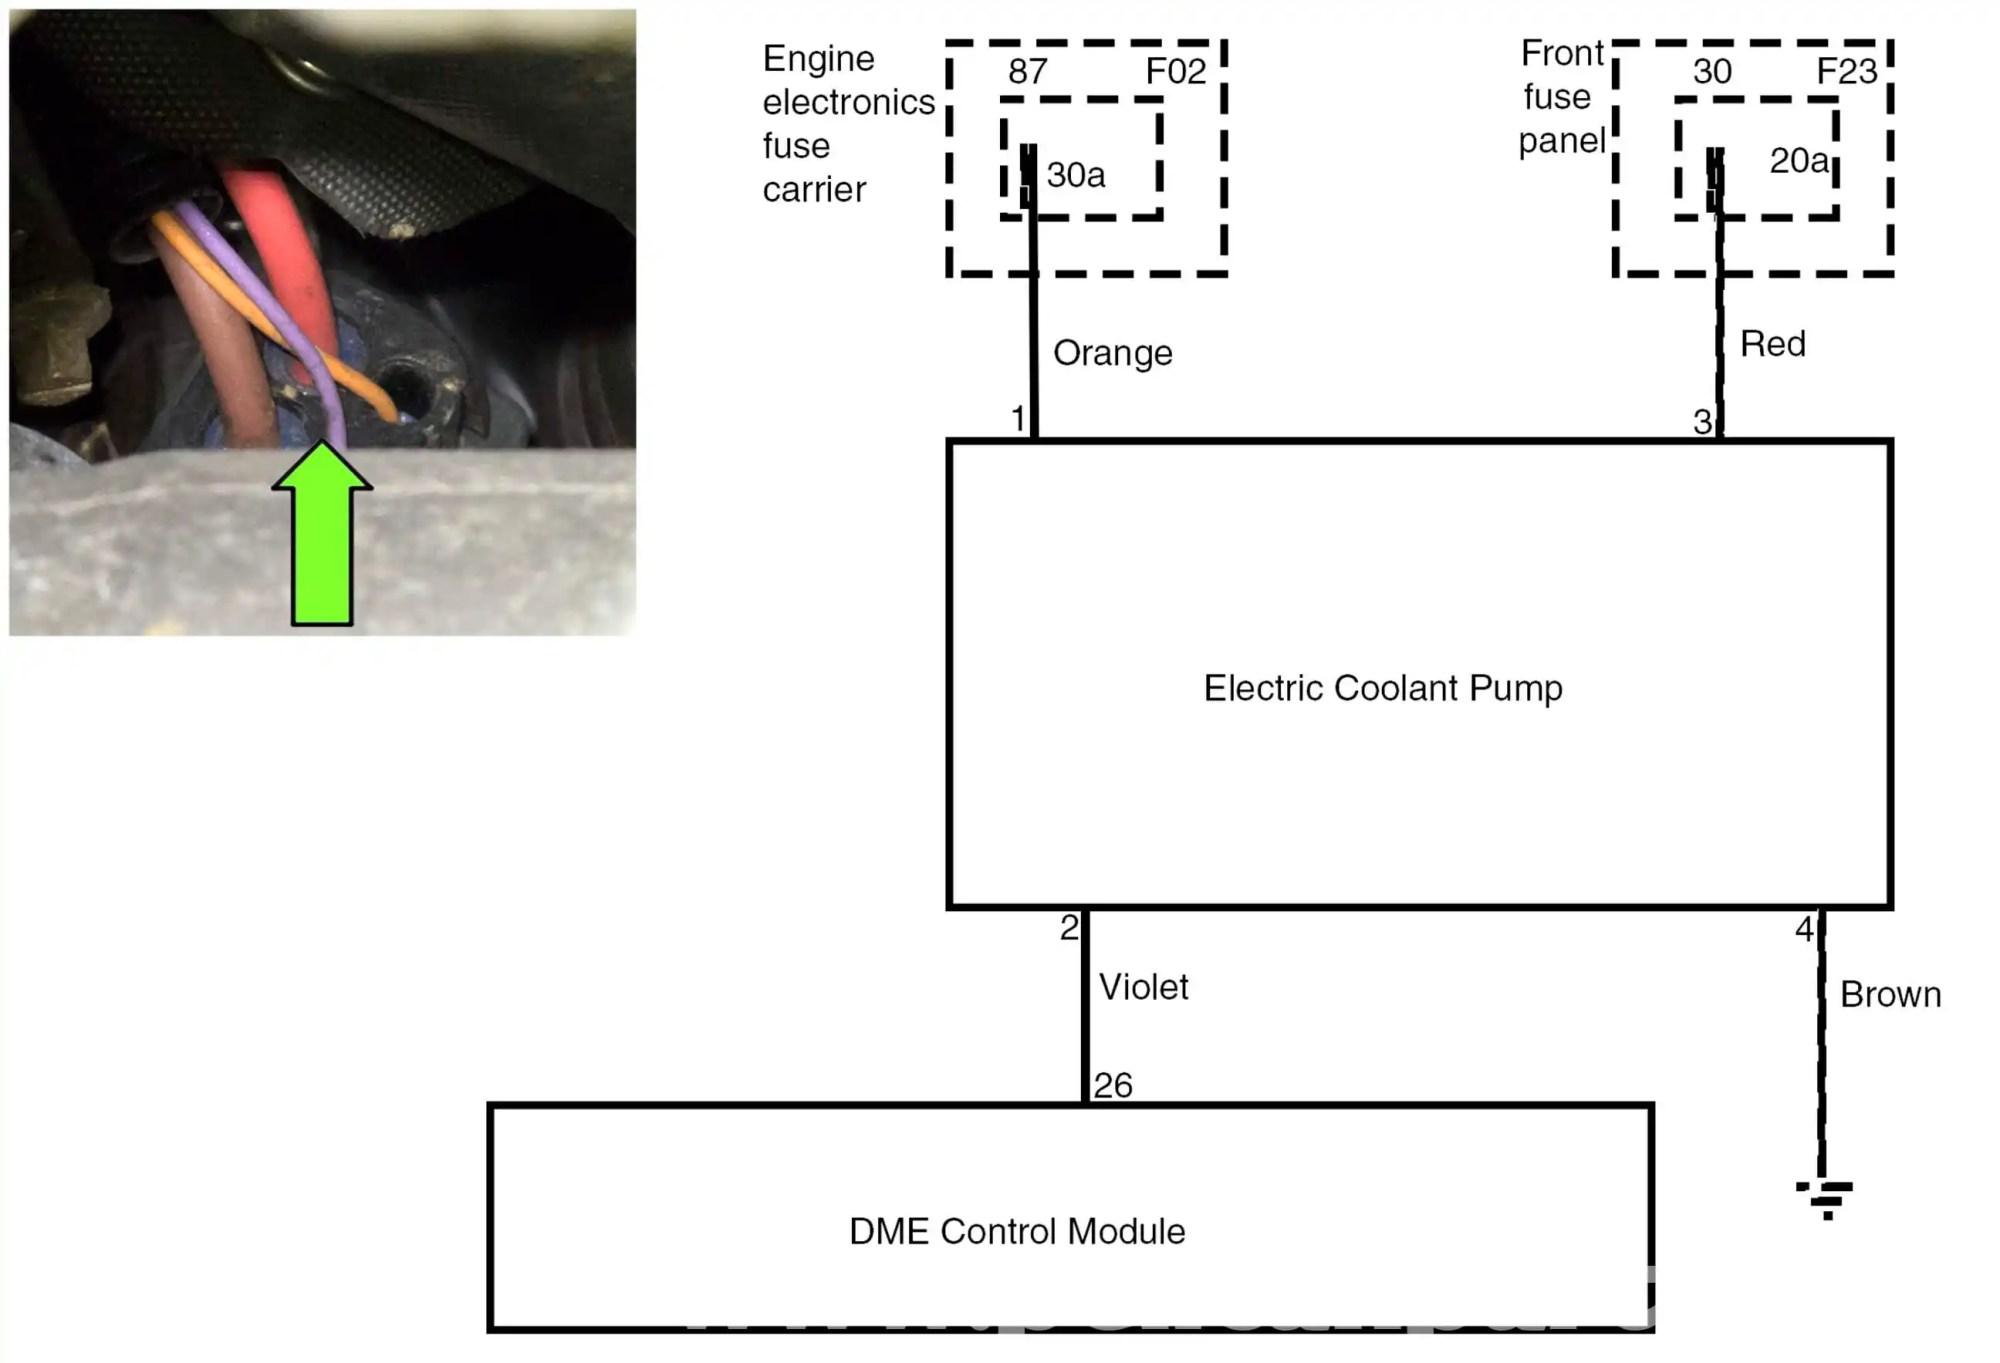 hight resolution of bmw n54 wiring diagram wiring diagram2007 bmw wiring diagram wiring schematicbmw 328i wiring harness diagram simple